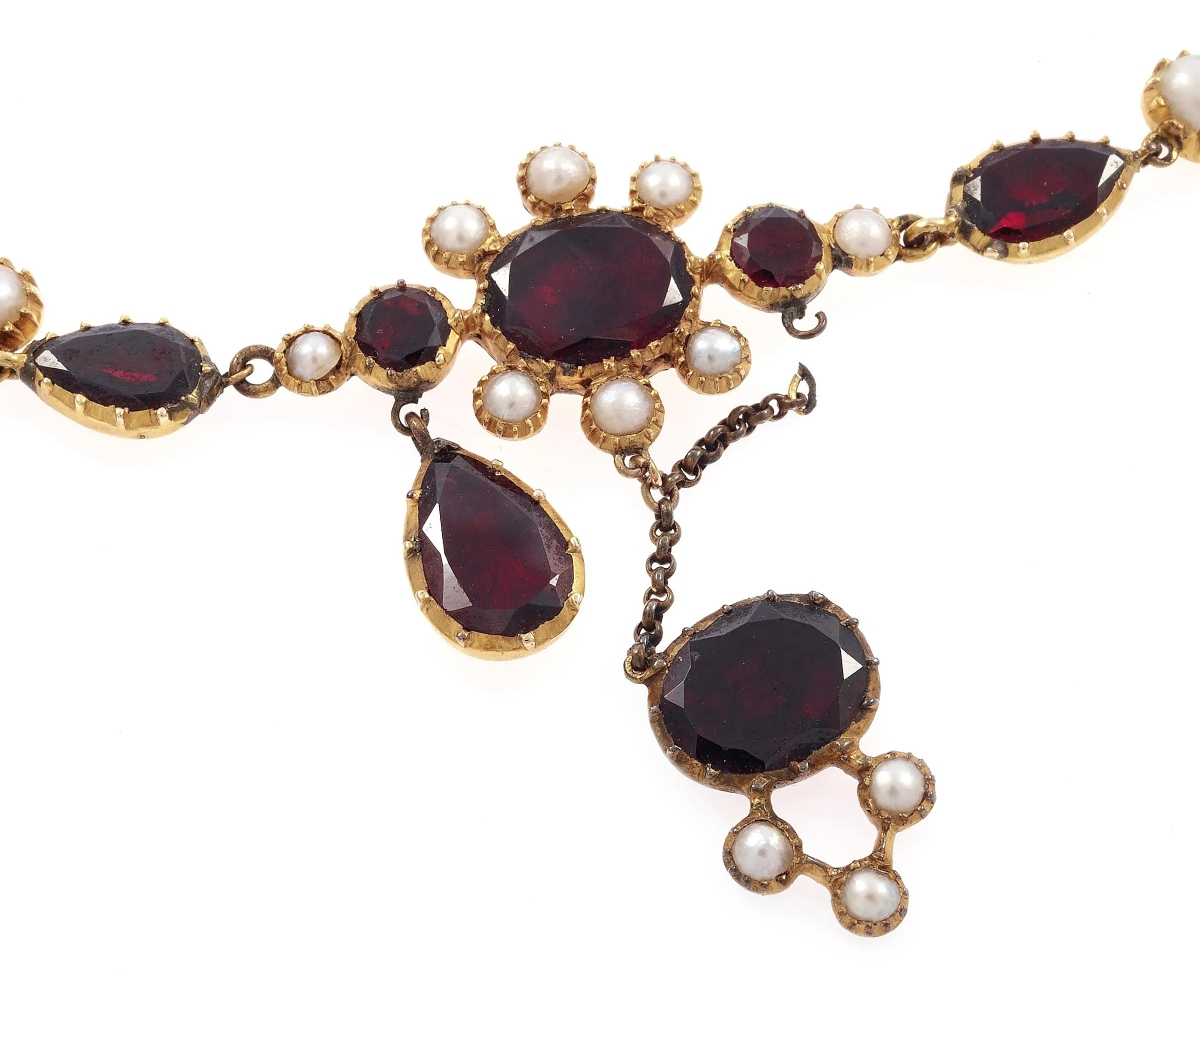 """""""The customer had my garbage can pulled out and was going to toss it because it was broken,"""" said Holly Anderson-Pree on this Georgian garnet, pearl and yellow gold necklace. It dated more than 200 years old and featured some breaks, which the specialist said is common for works of that age. The necklace made its way to the auction block instead, where it sold for $1,680."""